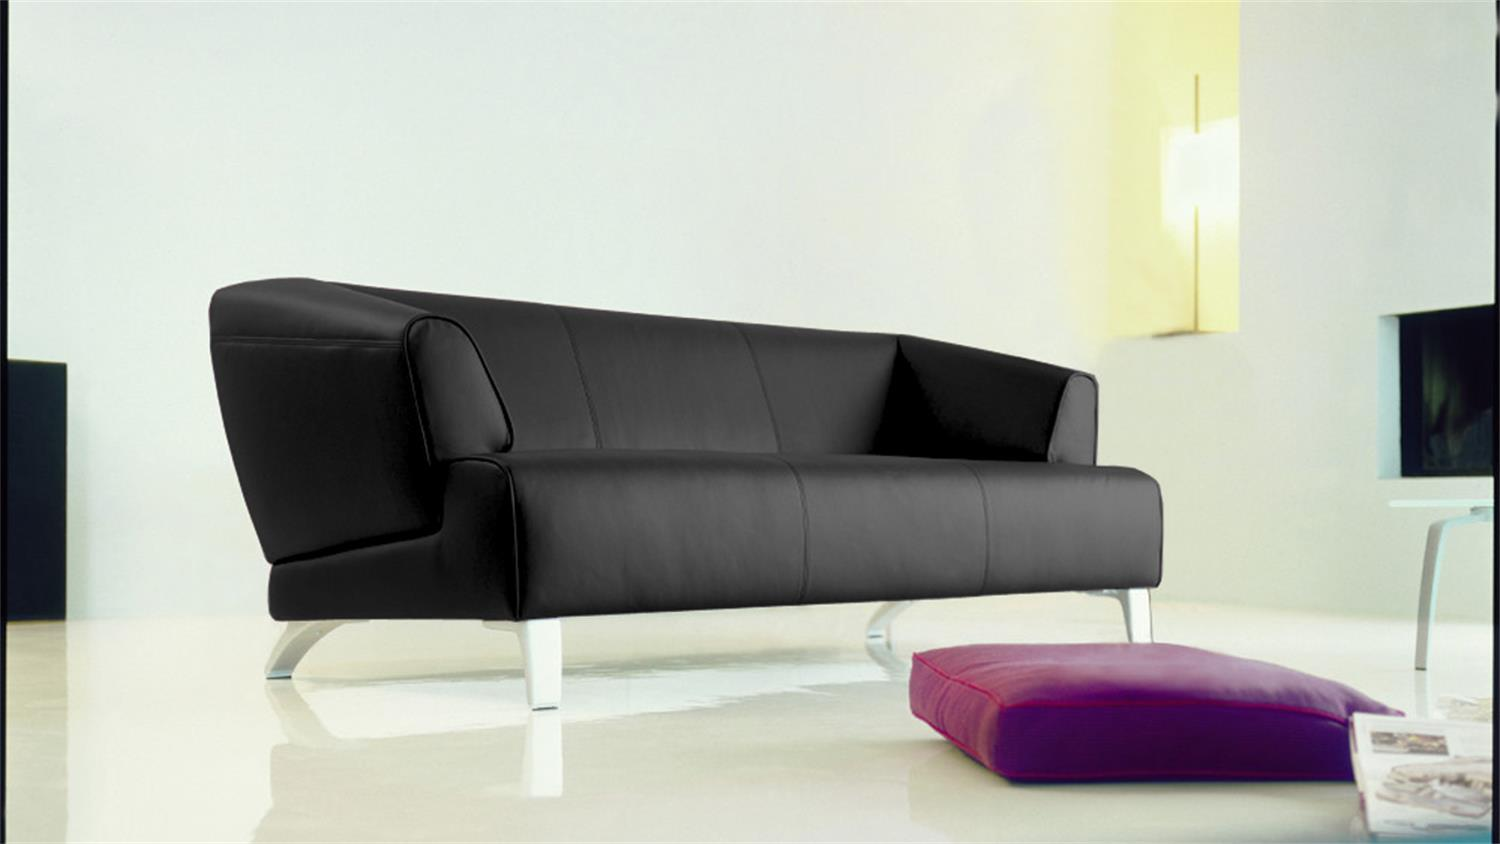 rolf benz sofa rolf benz 50 leather sofa by rolf benz. Black Bedroom Furniture Sets. Home Design Ideas